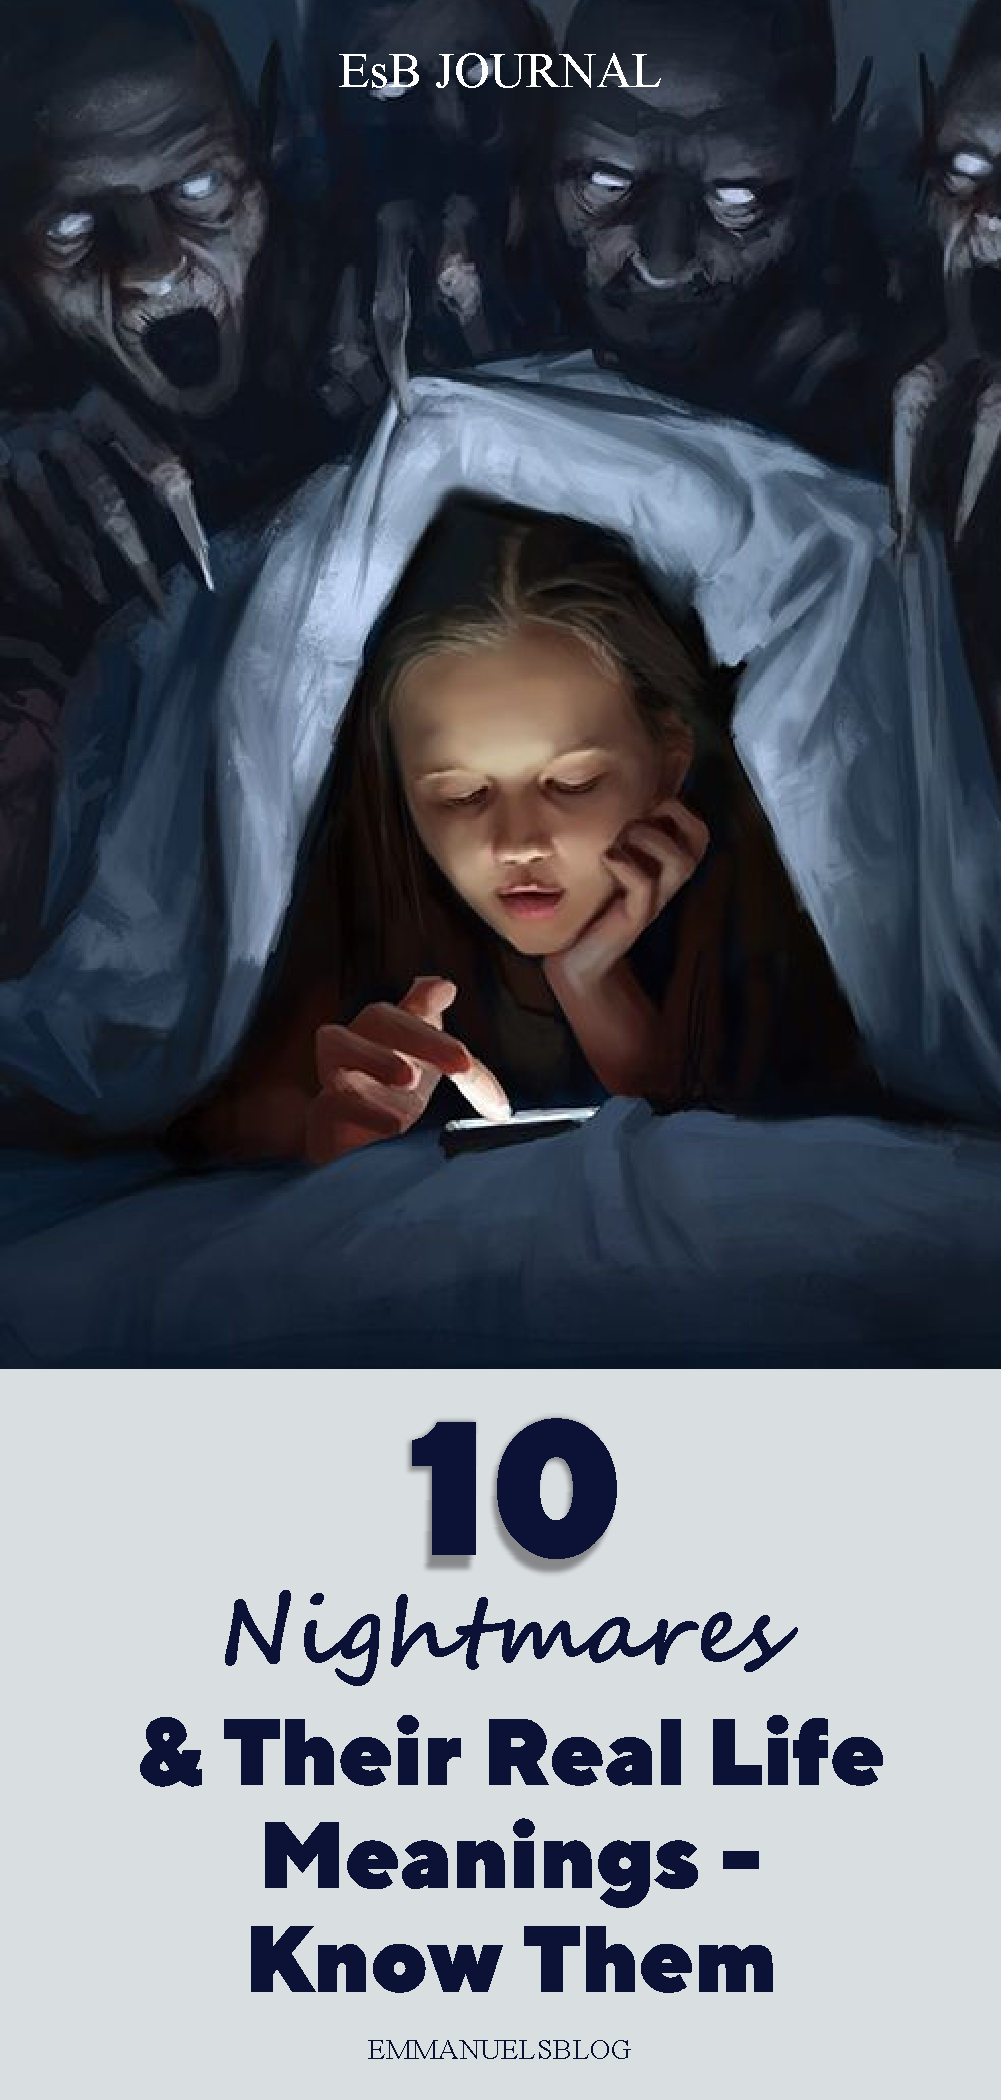 10 Nightmares And Their Real Life Meanings - Know Them